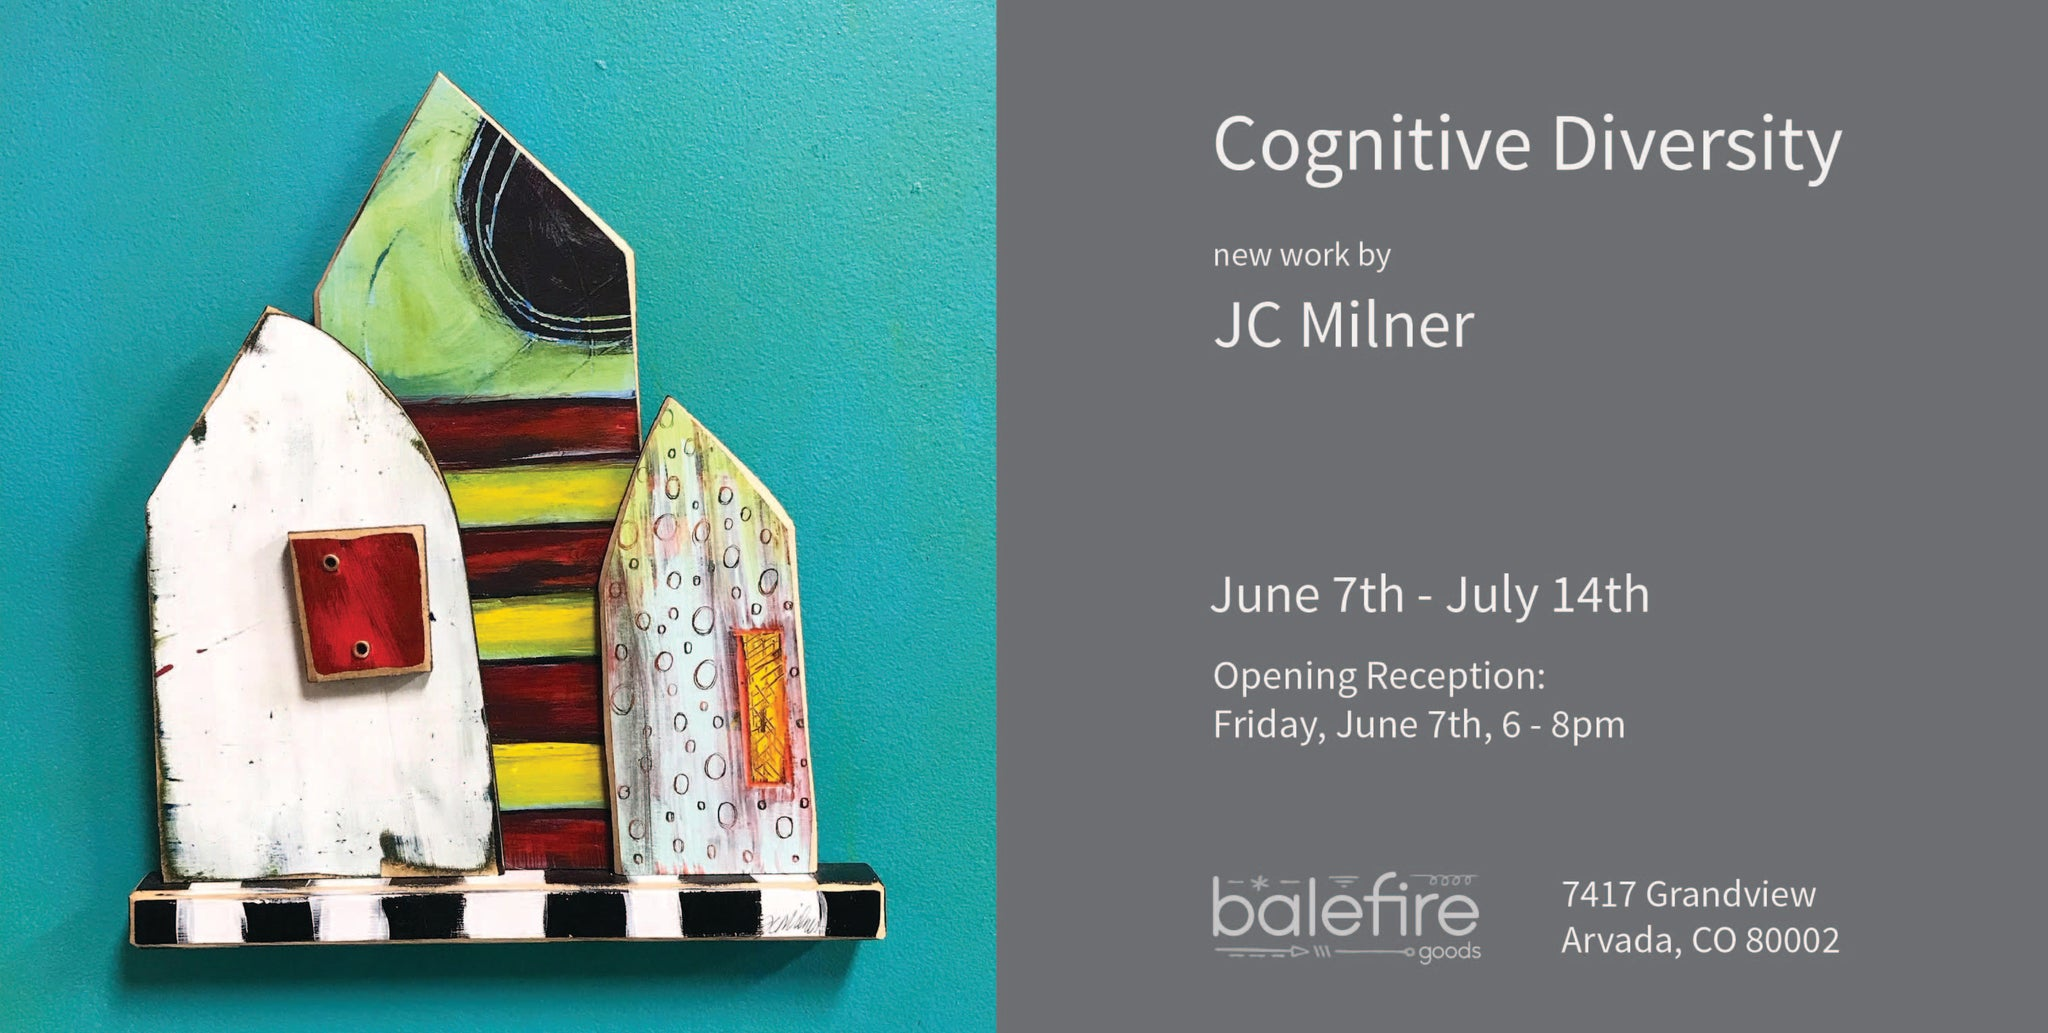 Cognitive Diversity: New Work by JC Milner